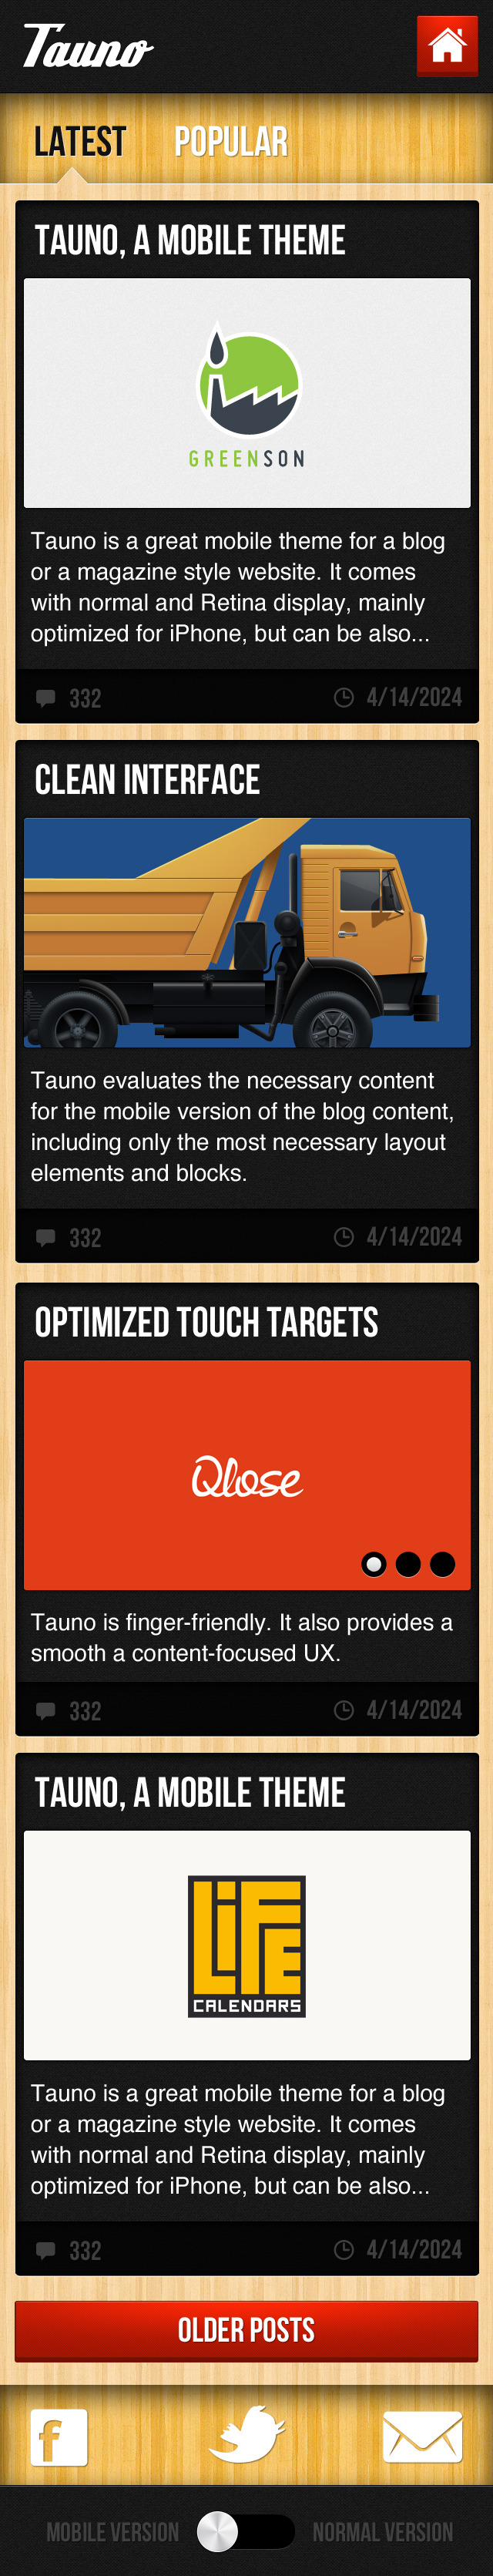 Tauno - A Mobile .PSD Theme - The category page, where it shows a stream of your posts. A shorting filter box at the top allows the user to short posts by relevance or popularity.